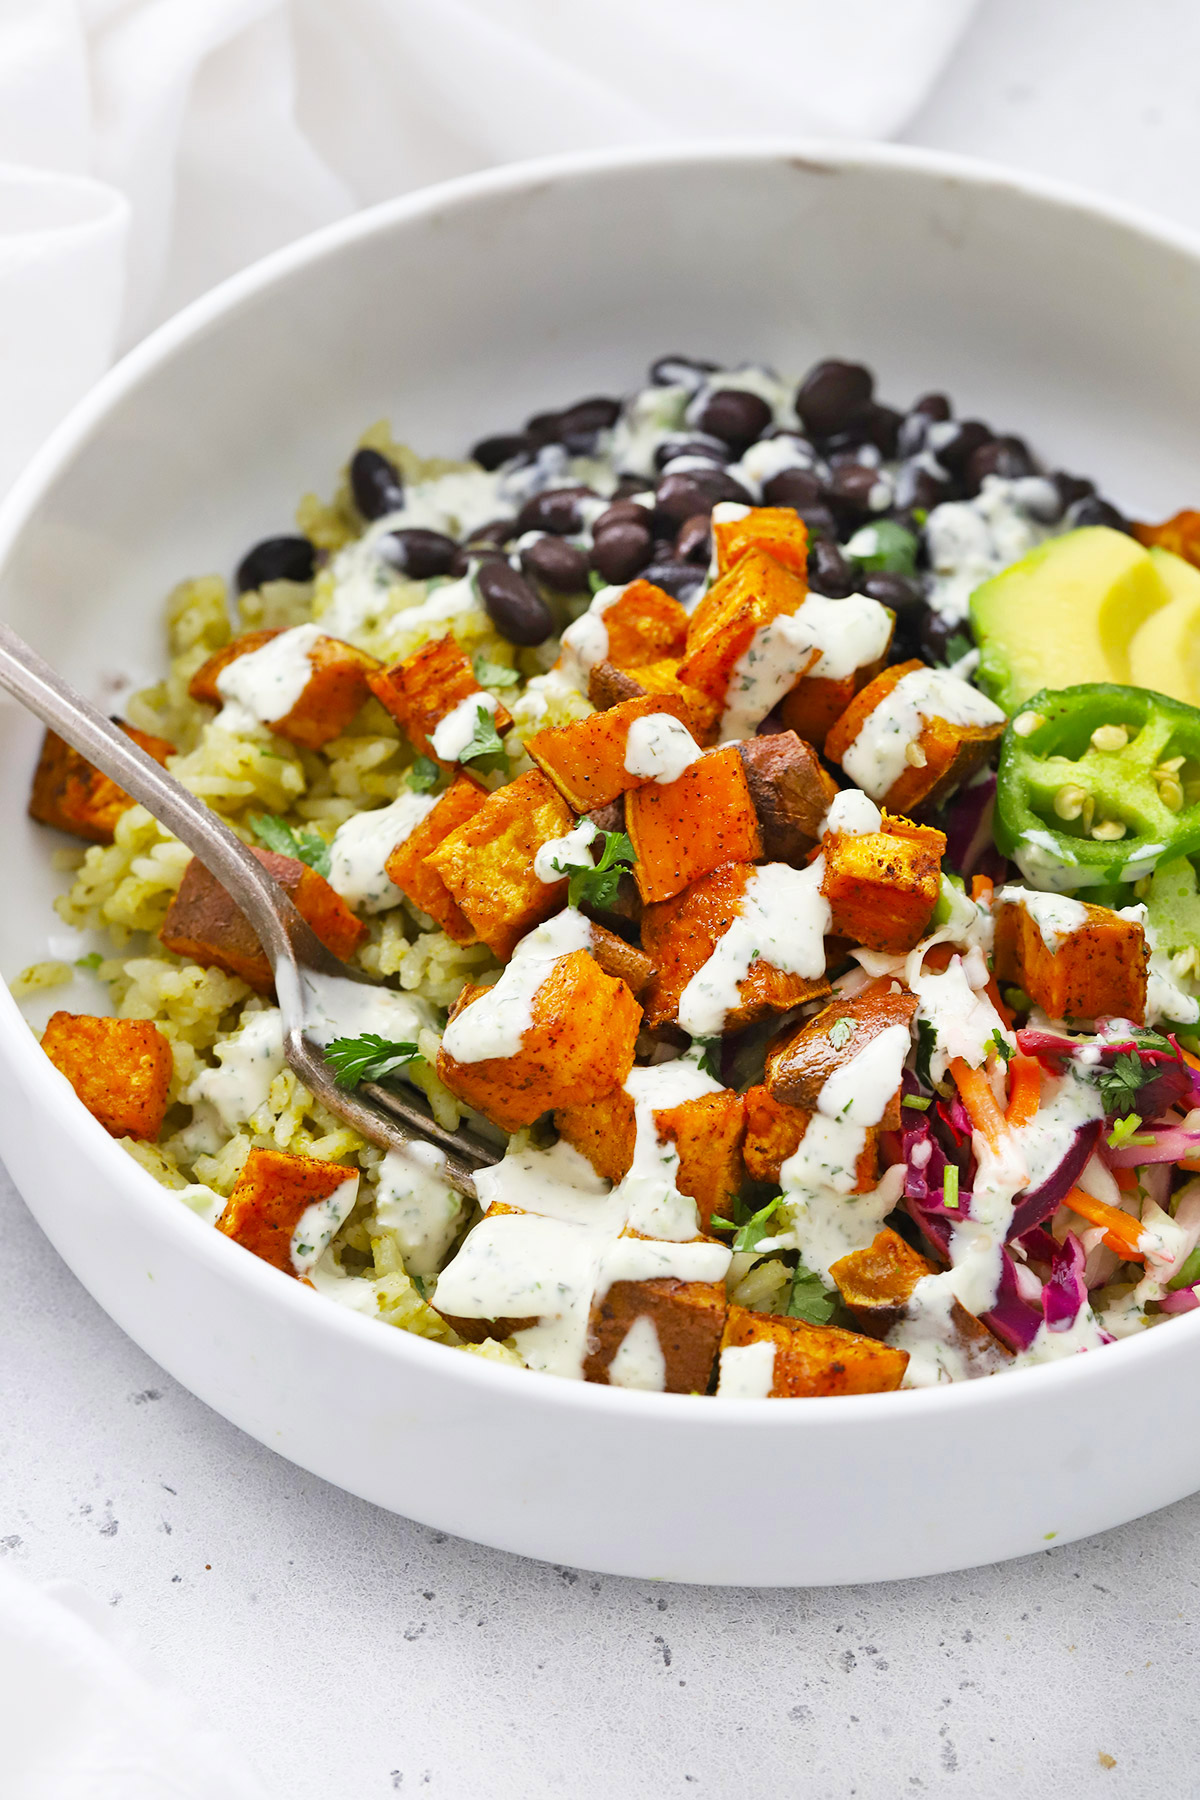 Close up view of Chipotle Sweet Potato Burrito Bowl drizzled with tomatillo ranch dressing